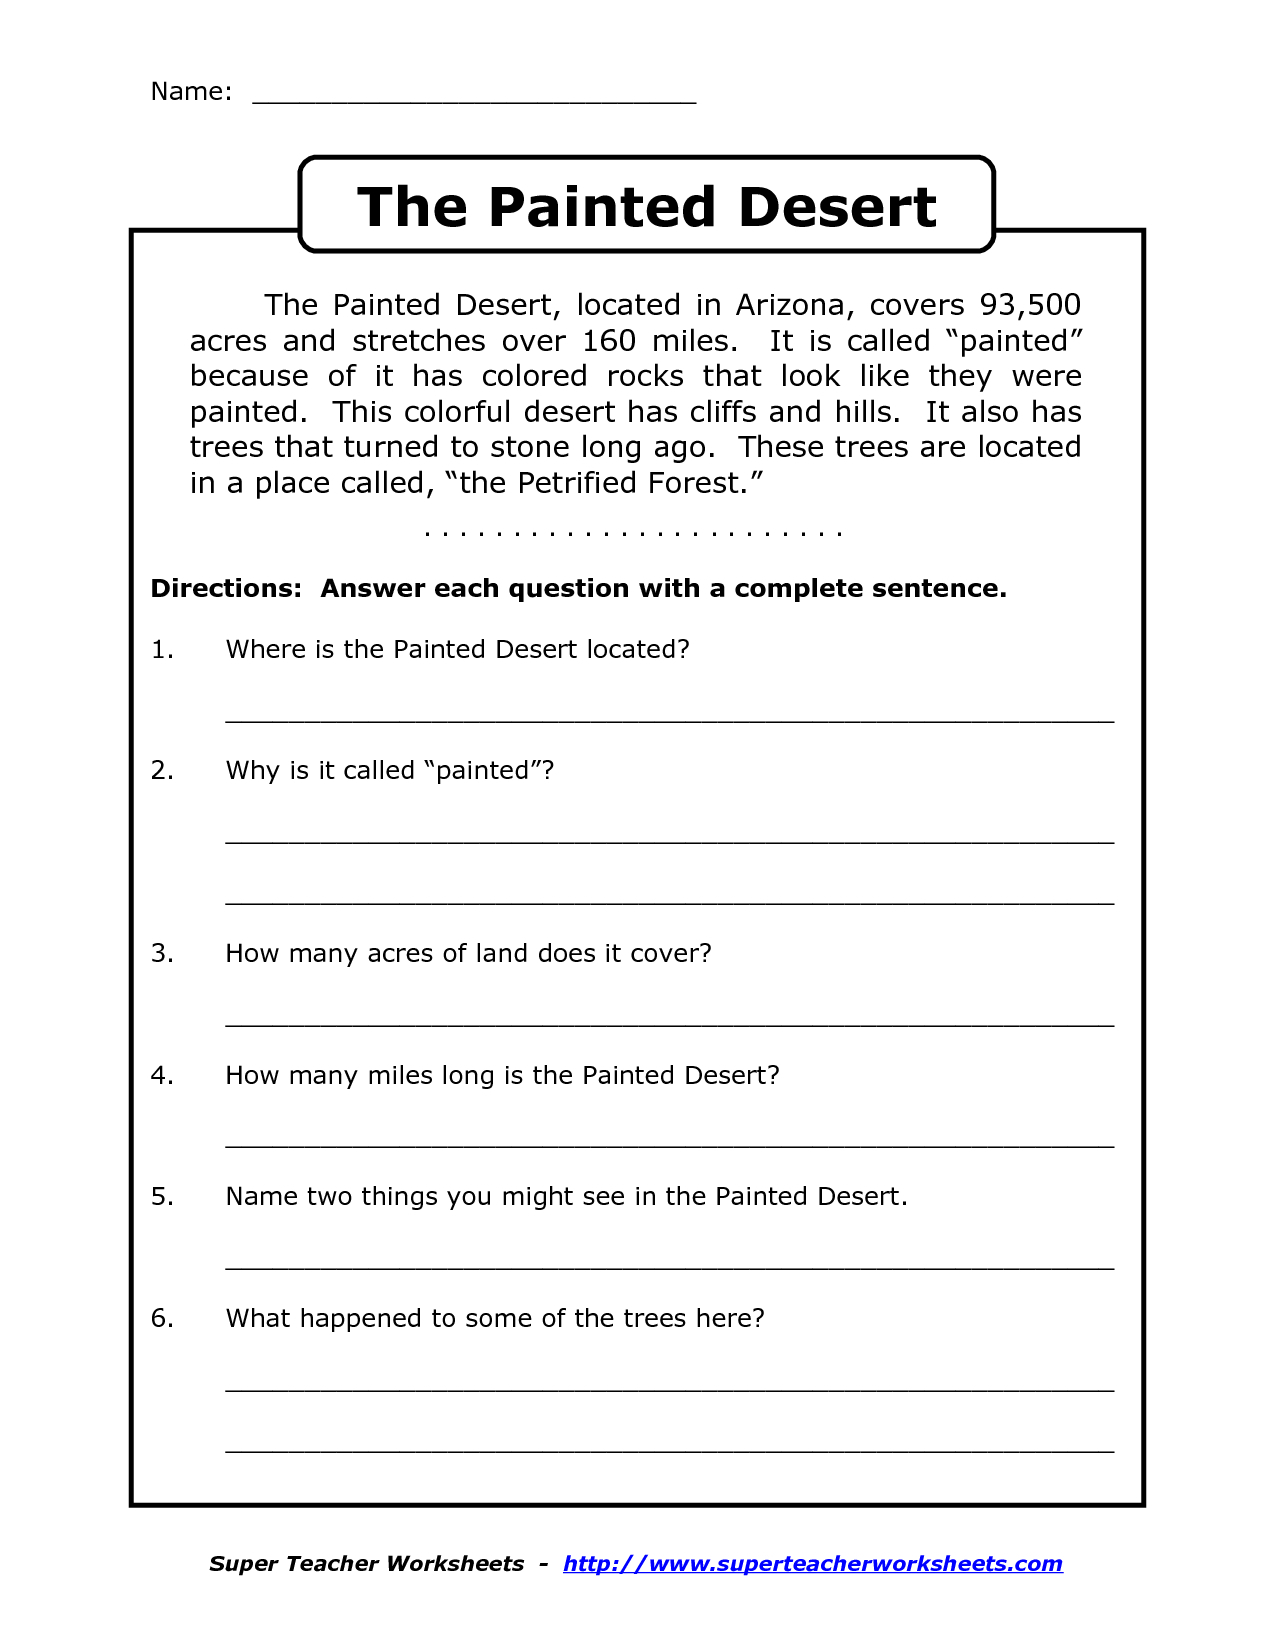 Reading Worksheets For 4Th Grade | Reading Comprehension Worksheets | Printable Comprehension Worksheets For Grade 3